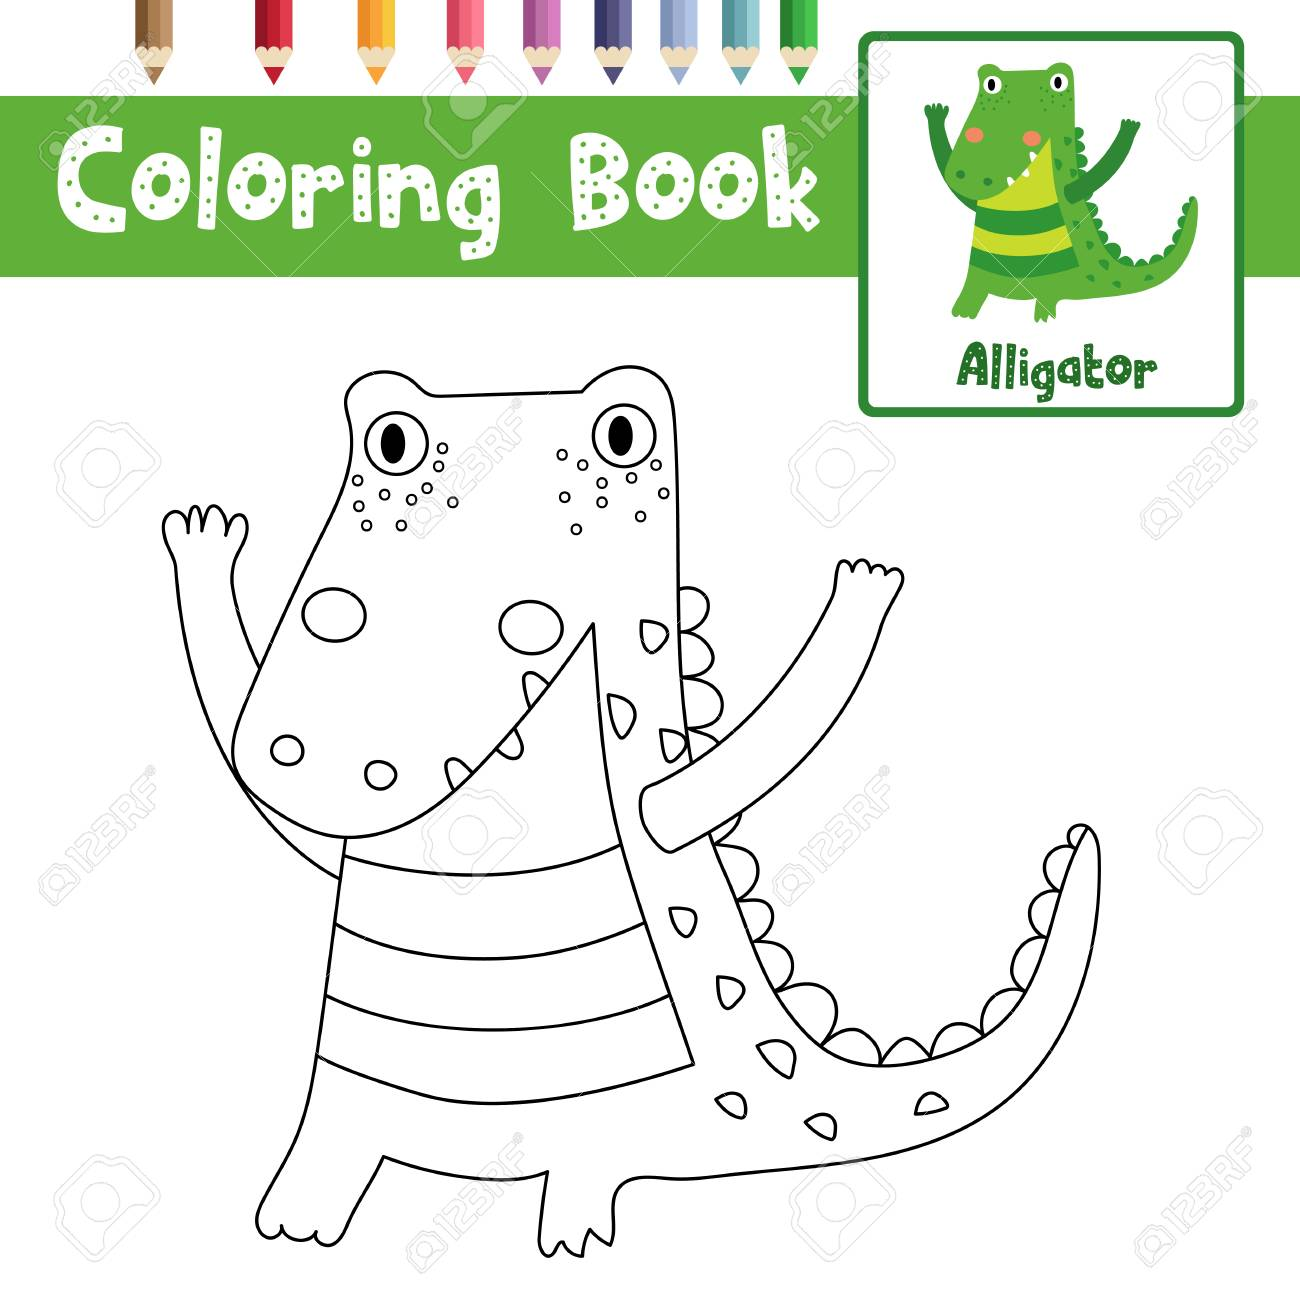 Alligator coloring page   Free Printable Coloring Pages   1300x1300